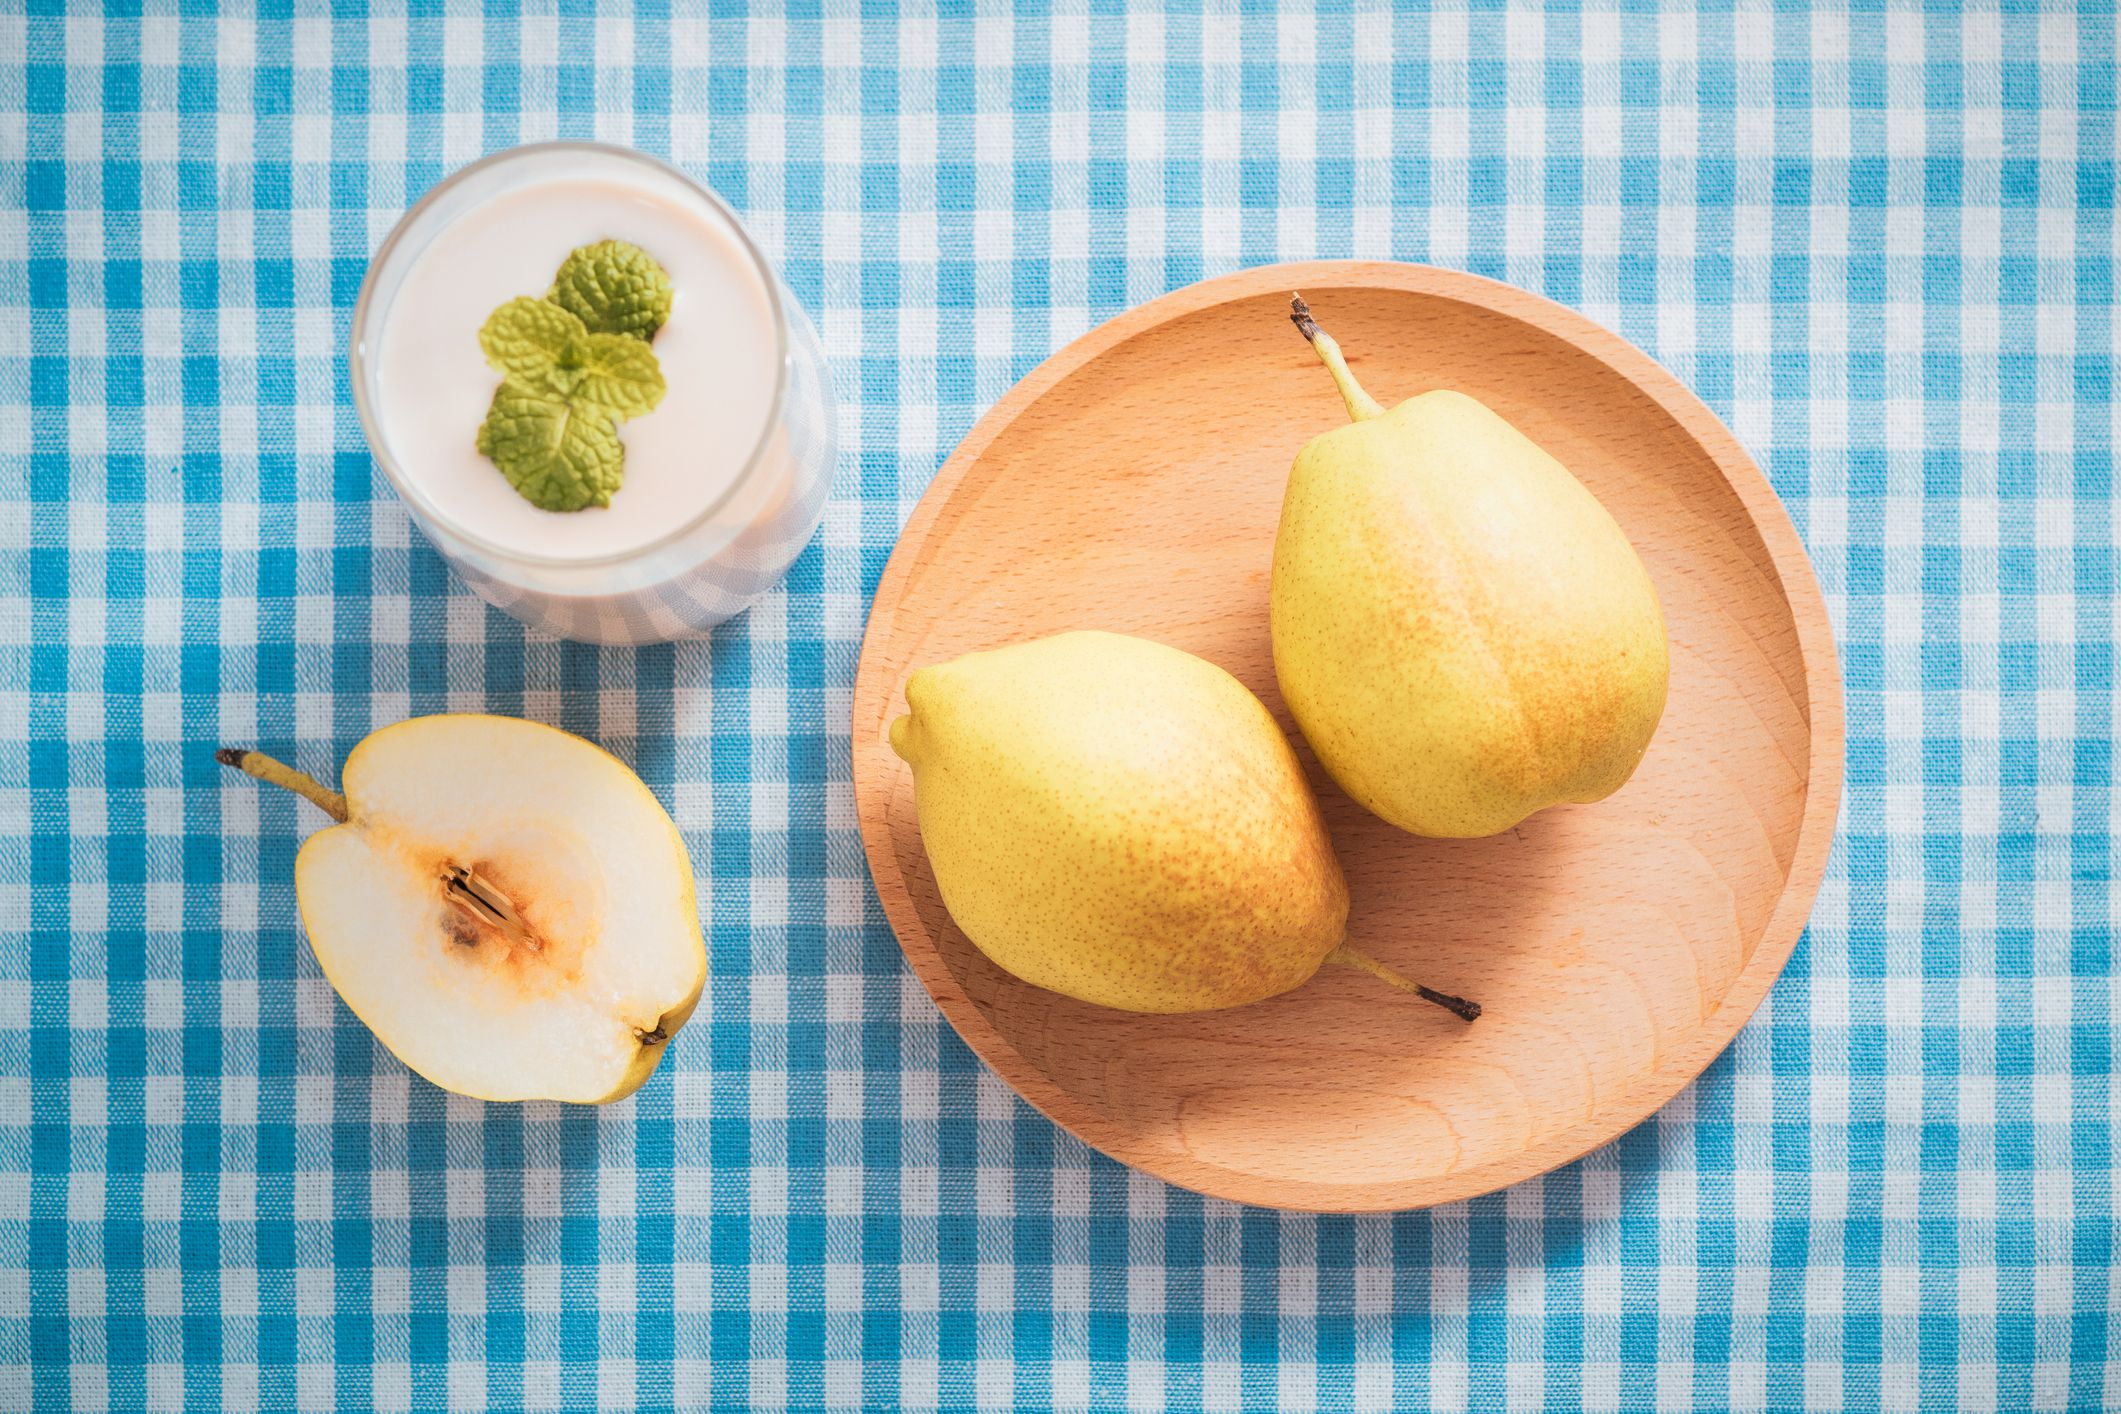 Top 4 Recipes Using Asian Pears